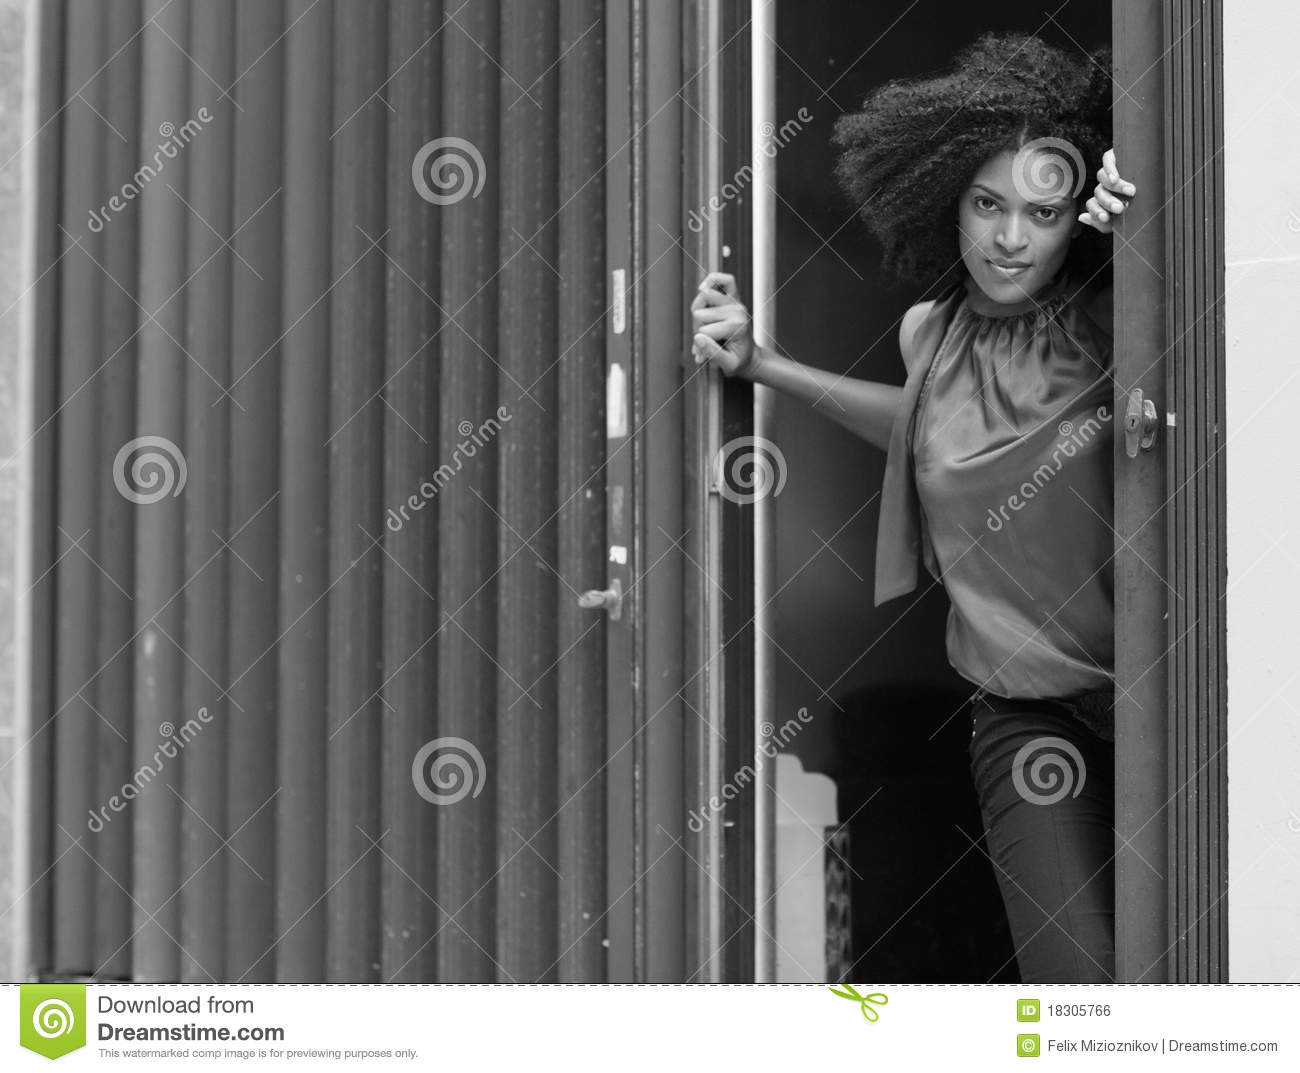 Woman by the door Royalty Free Stock Image